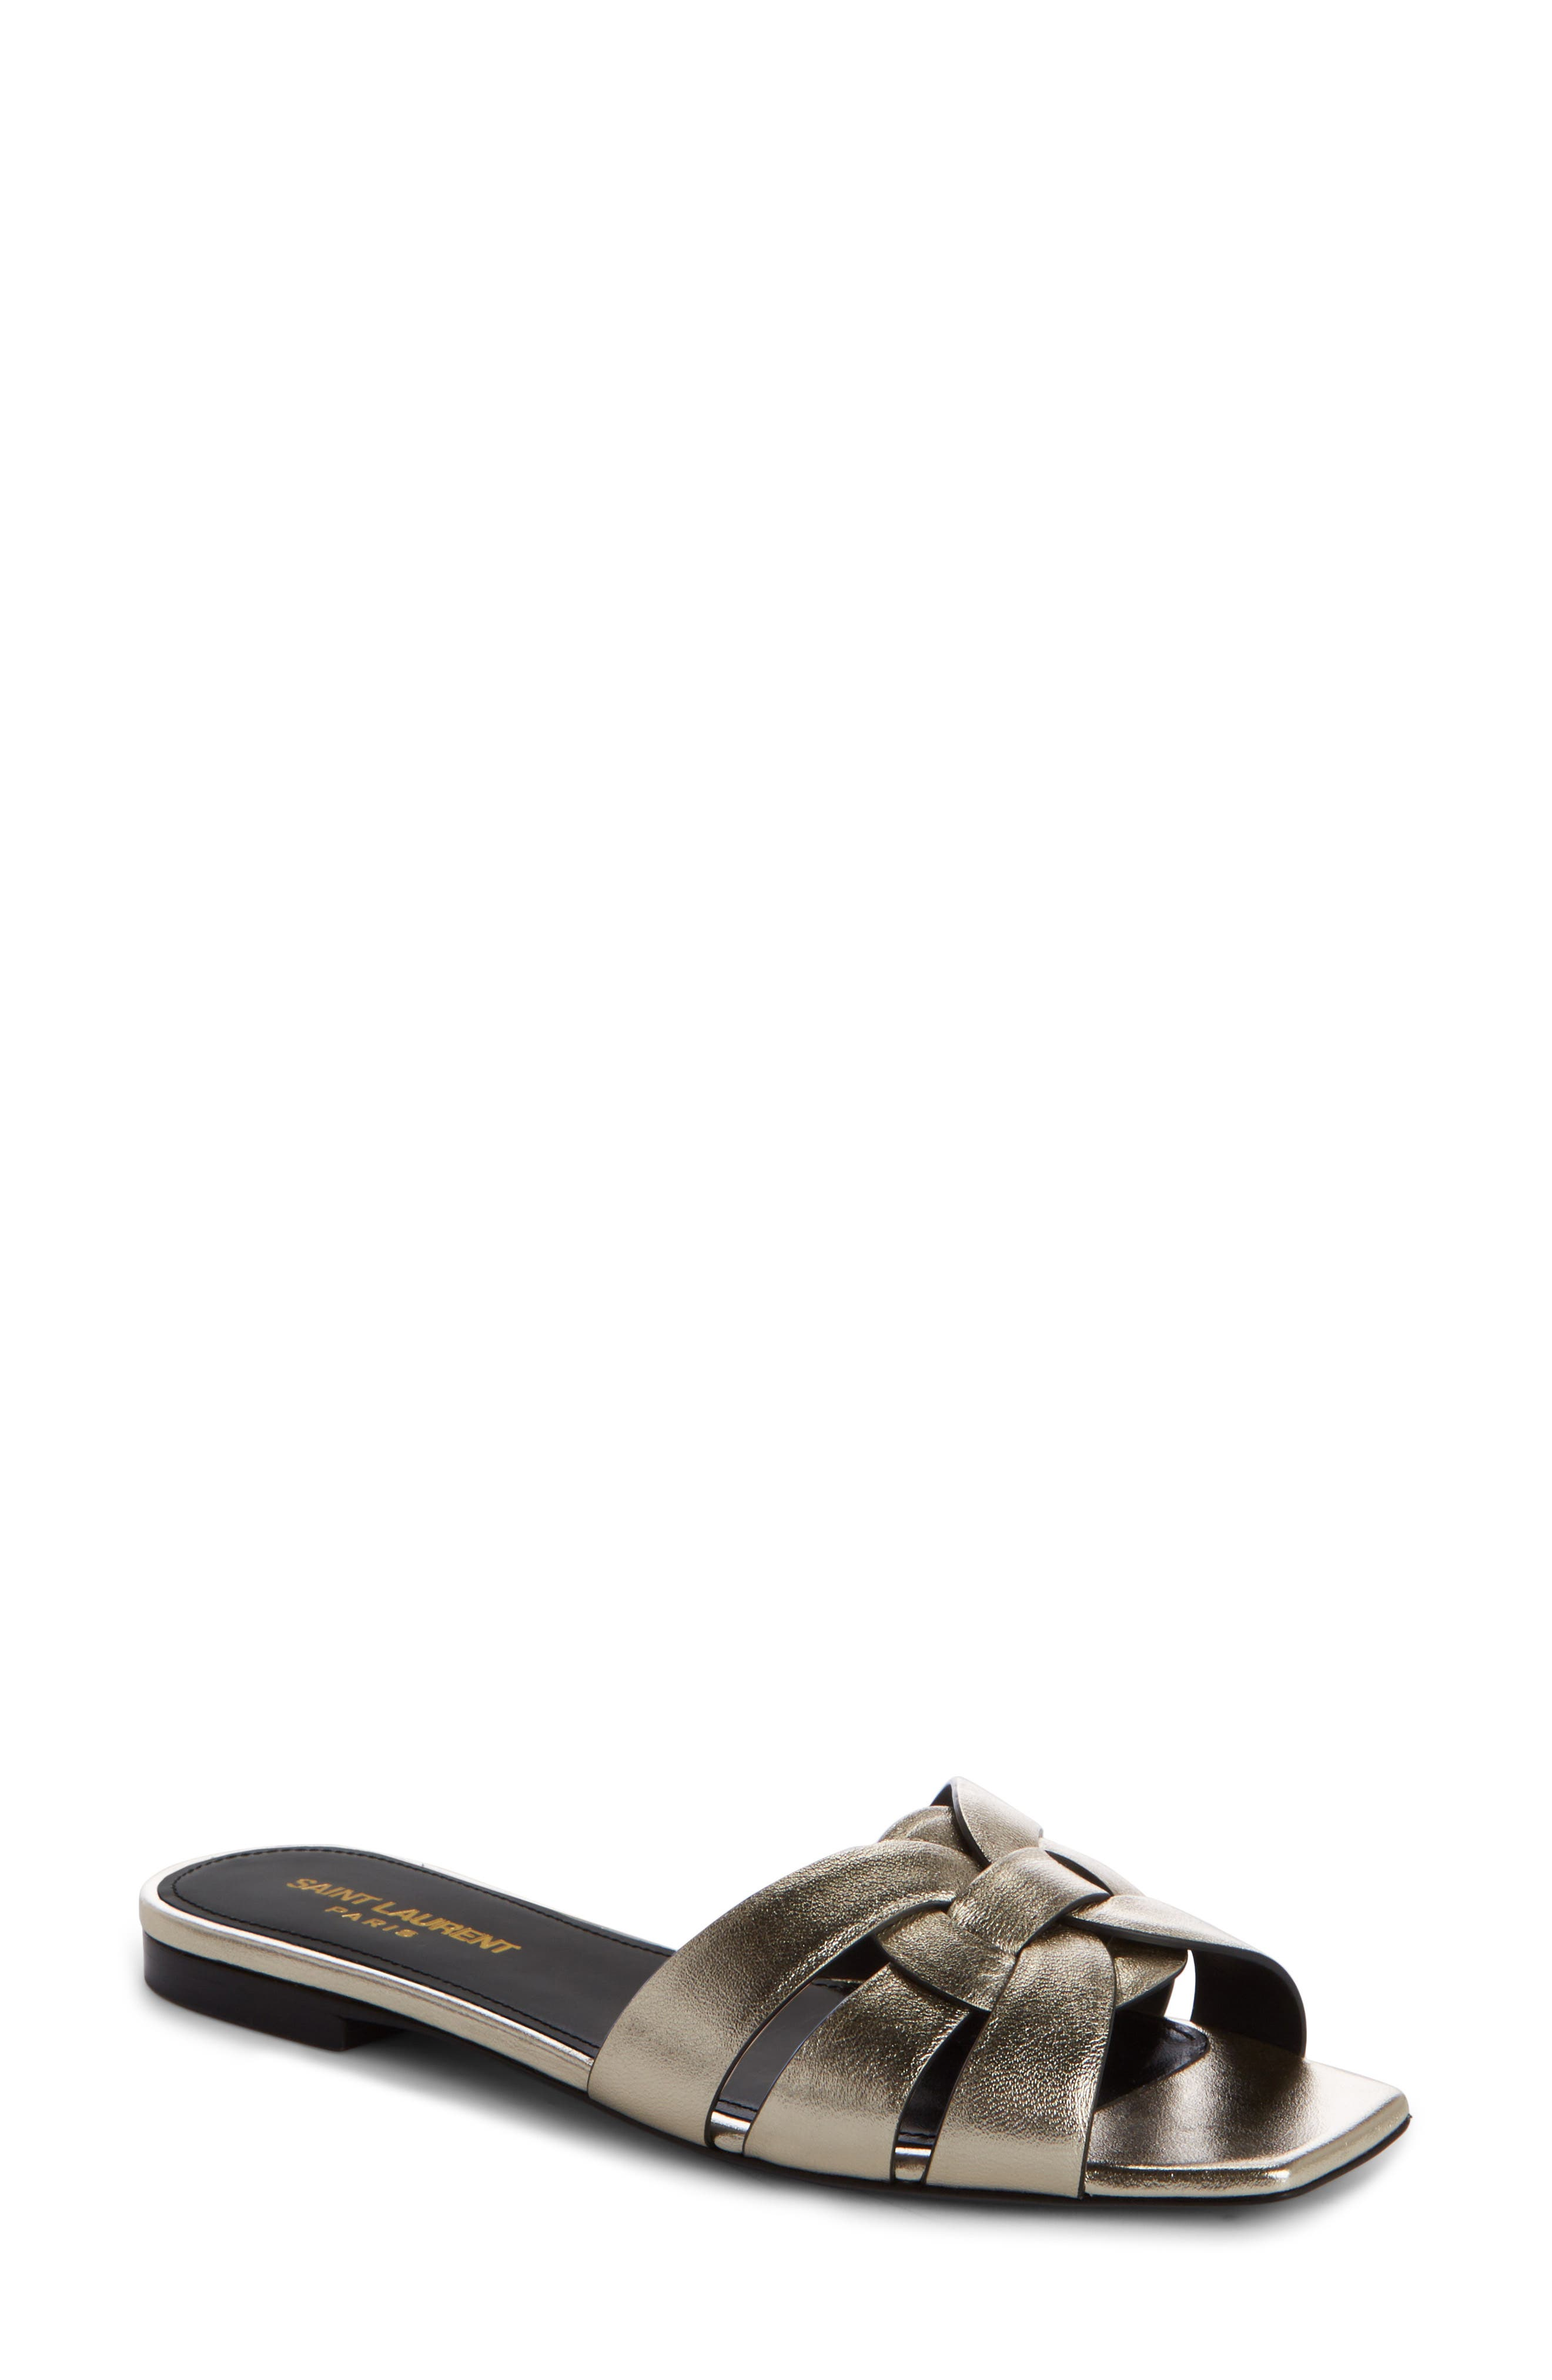 Nu Pieds Strappy Slide Sandal,                             Main thumbnail 1, color,                             7100 Or Pale